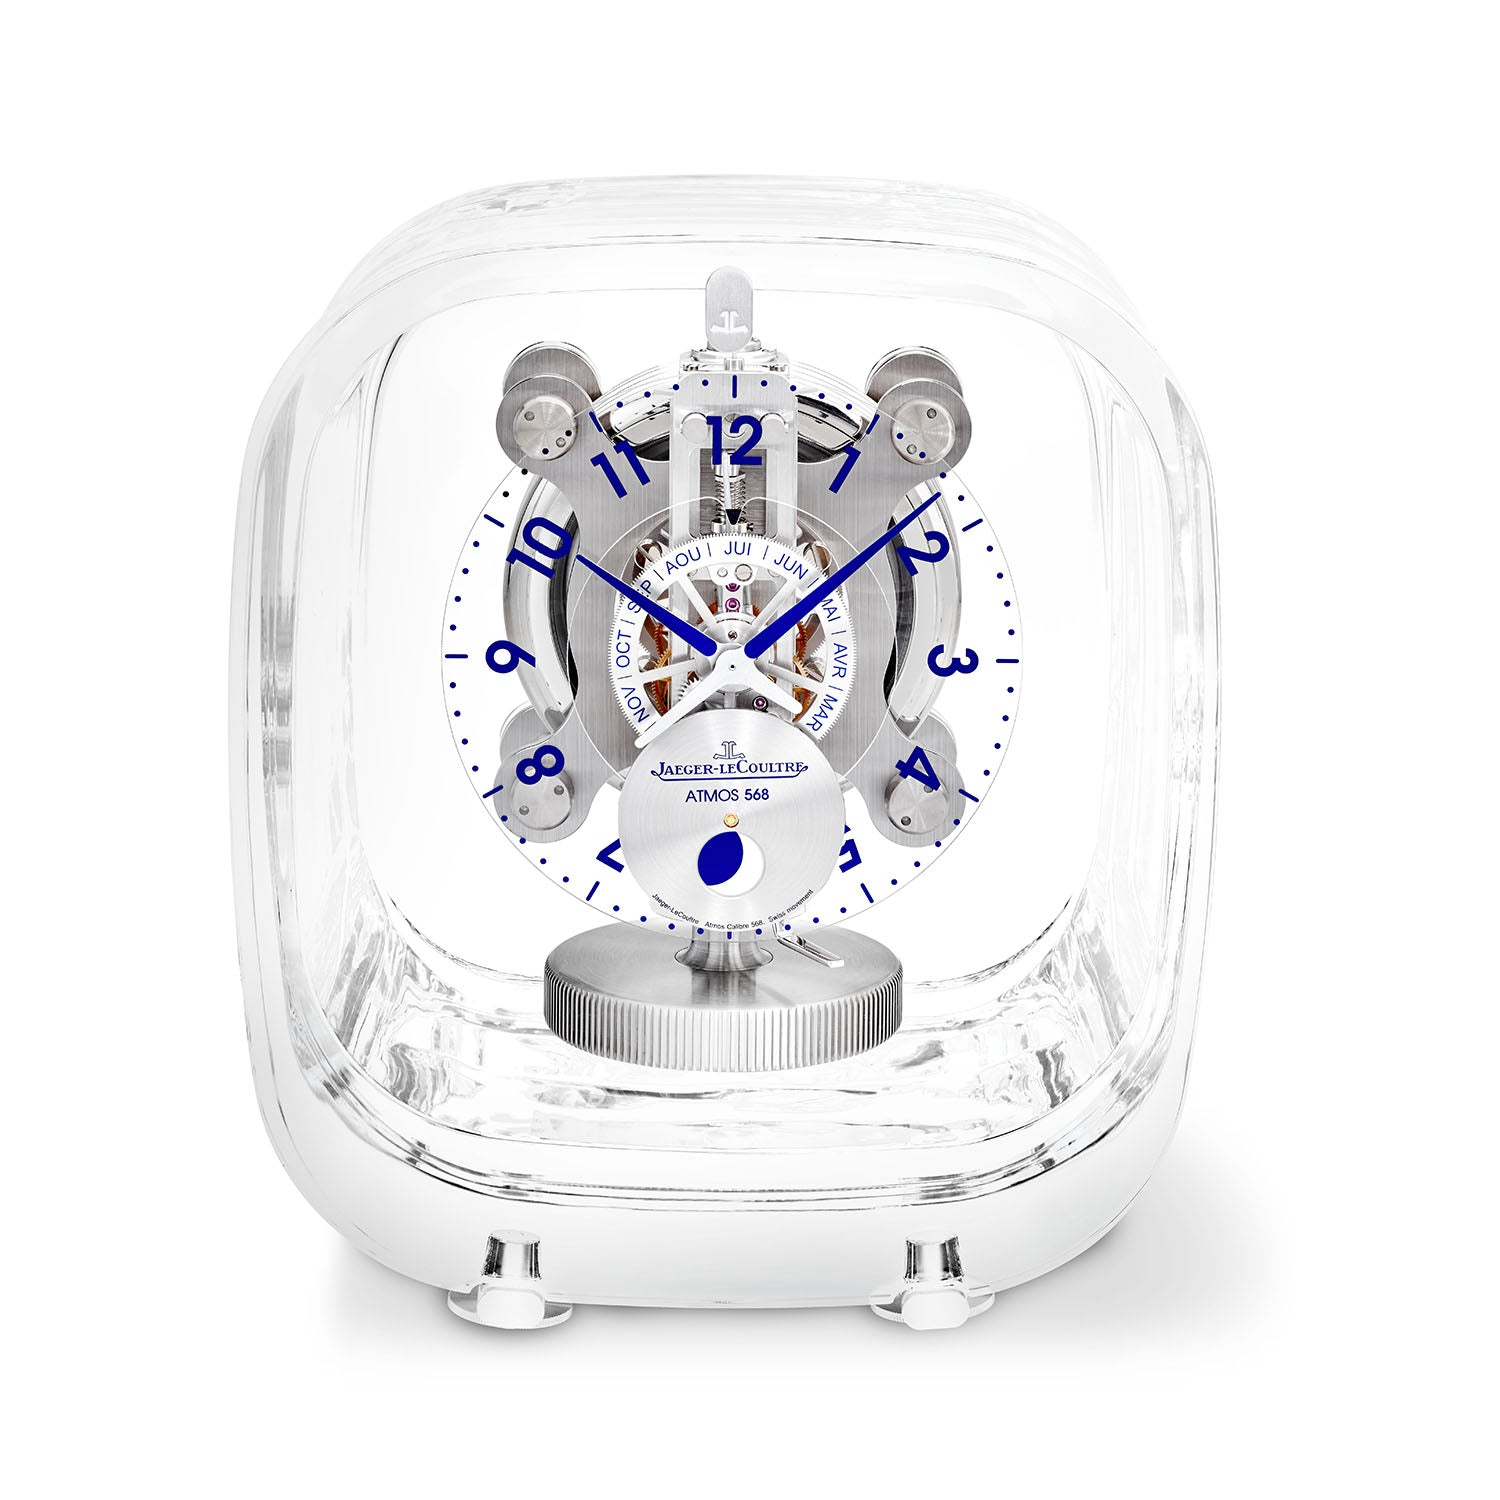 Atmos 568 By Marc Newson - Q5165107